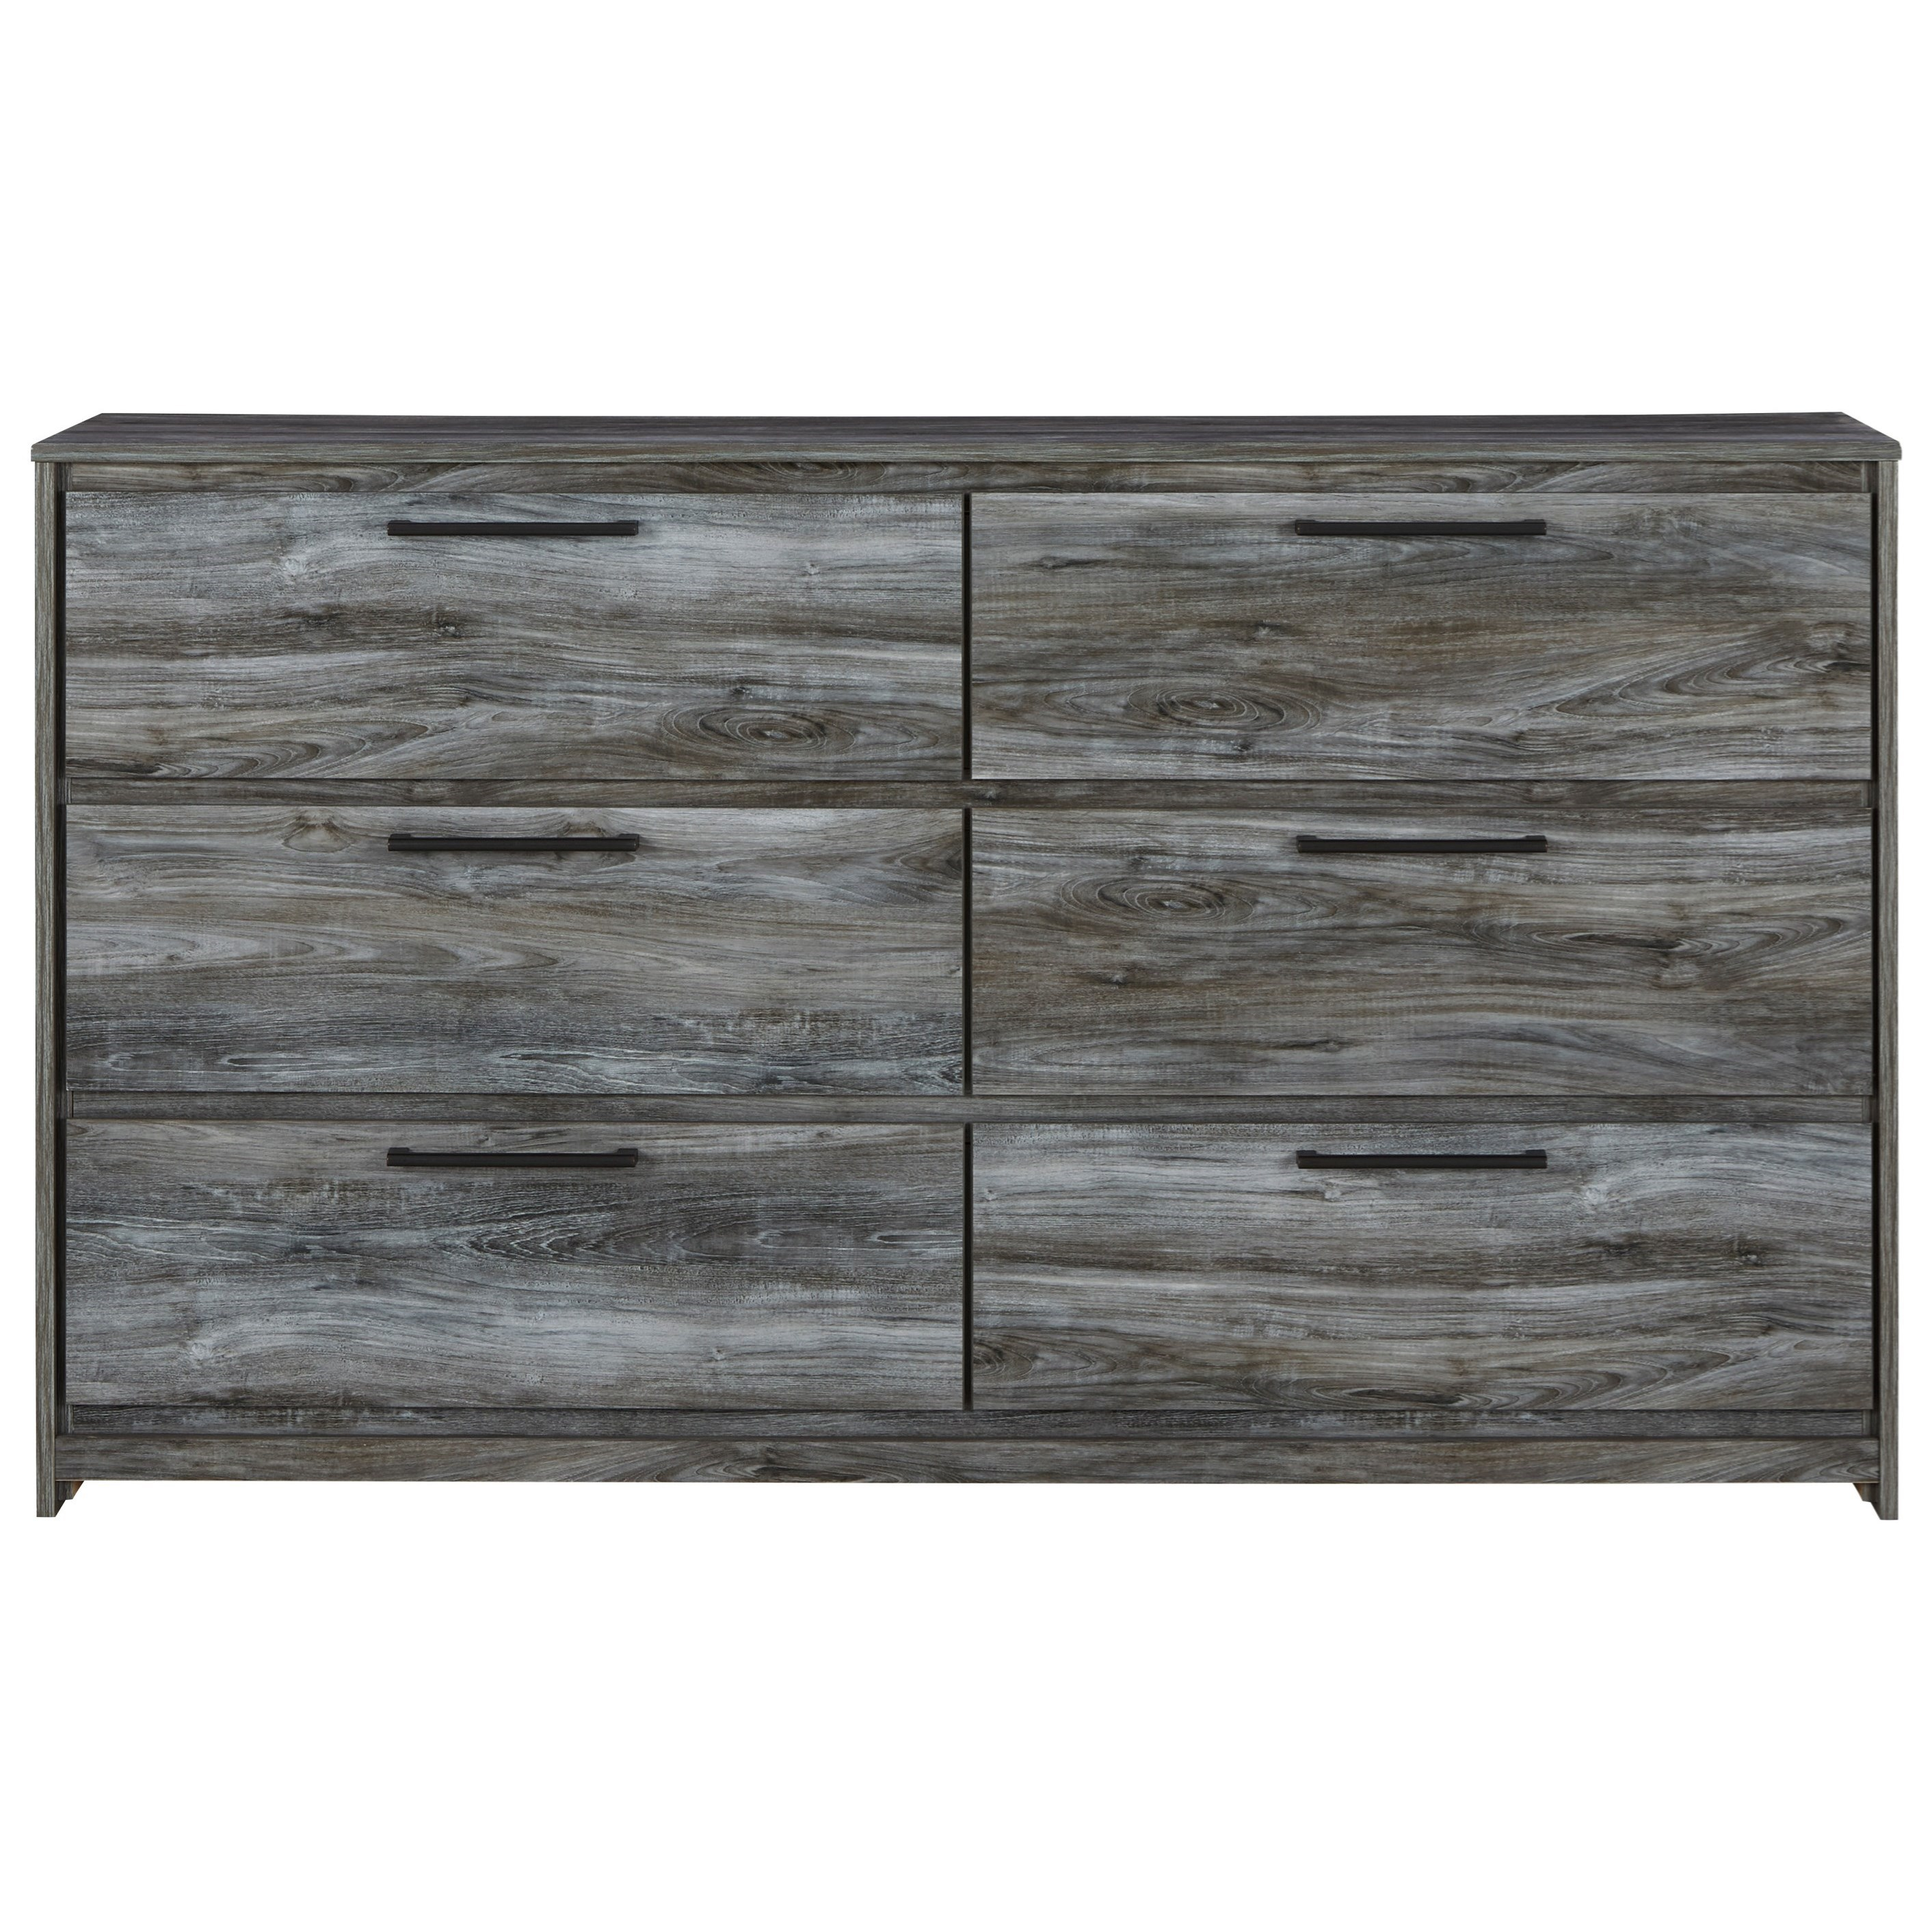 Baystorm Dresser by Signature Design by Ashley at Sparks HomeStore